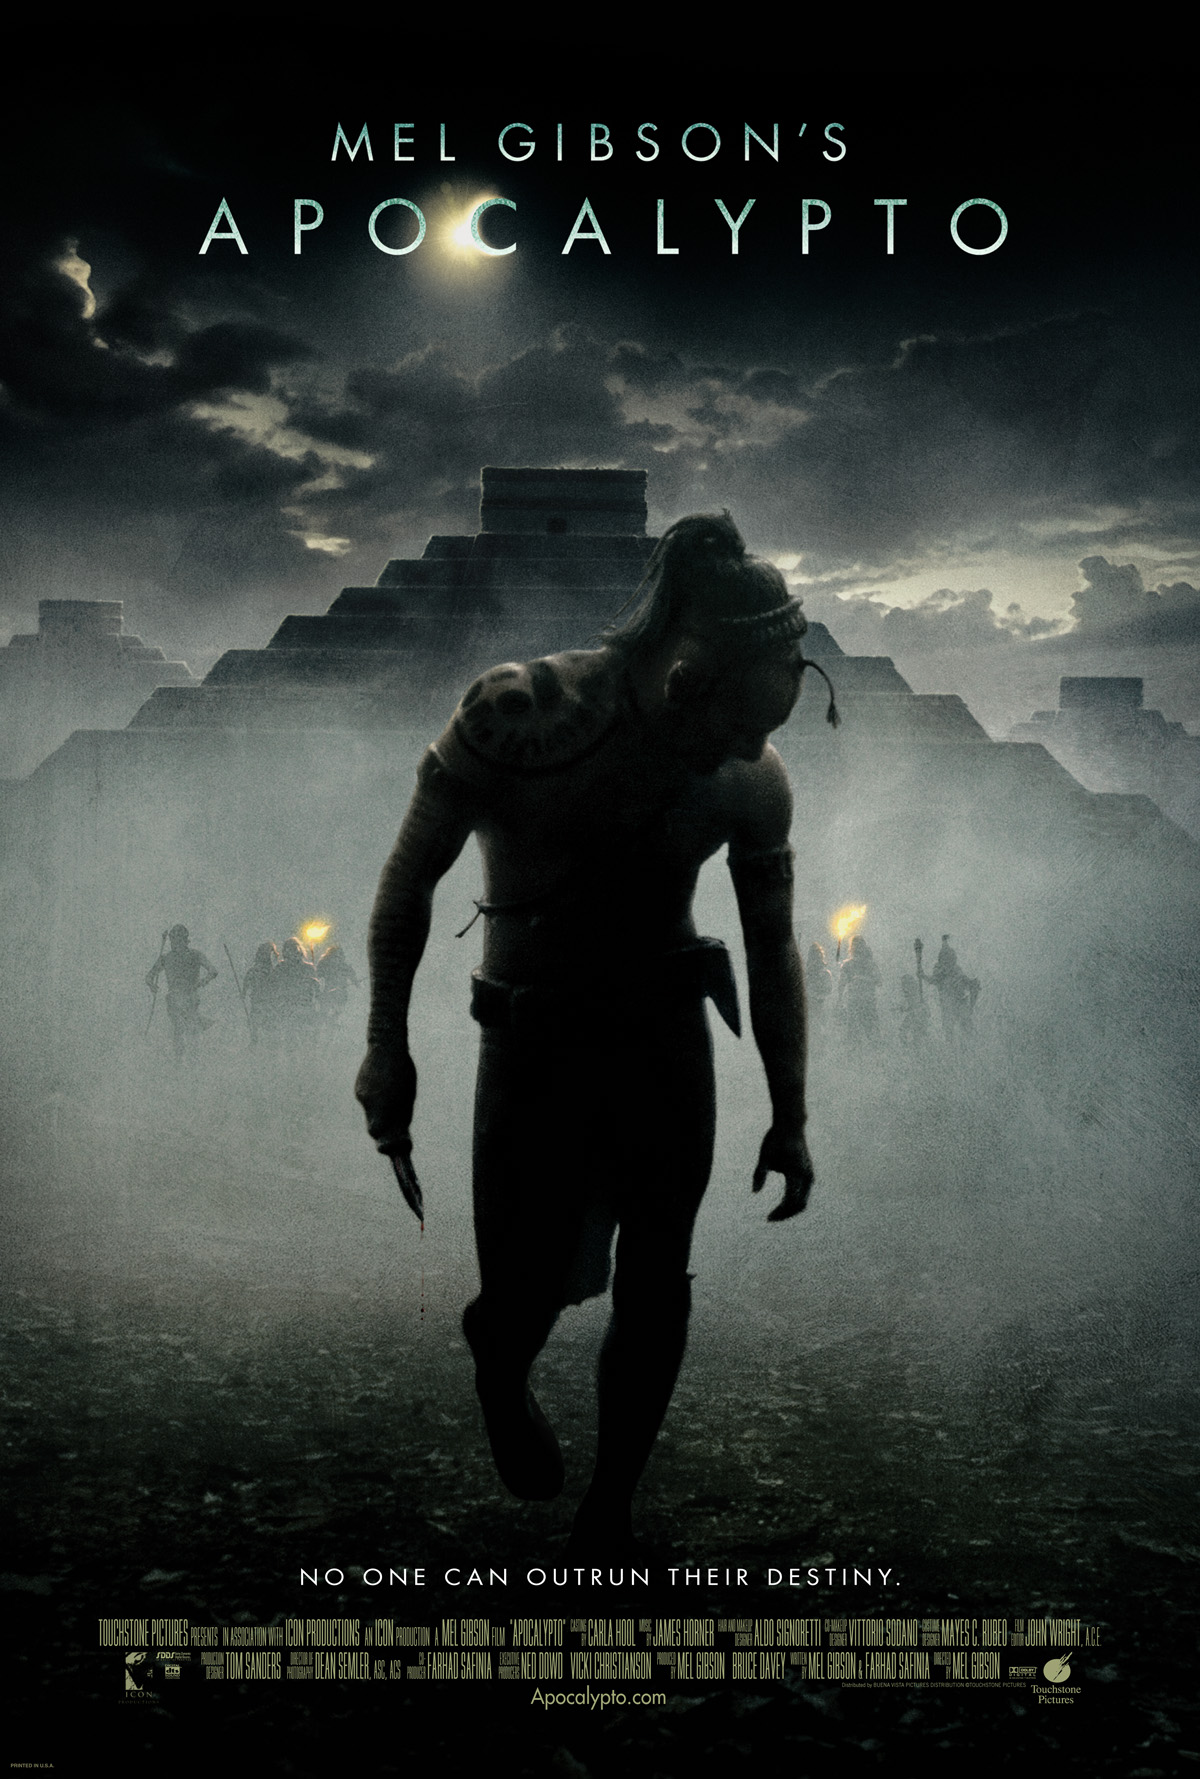 http://www.abbaswatchman.com/Sun%20symbols%20in%20apocalypto%20movie%20cover.jpg